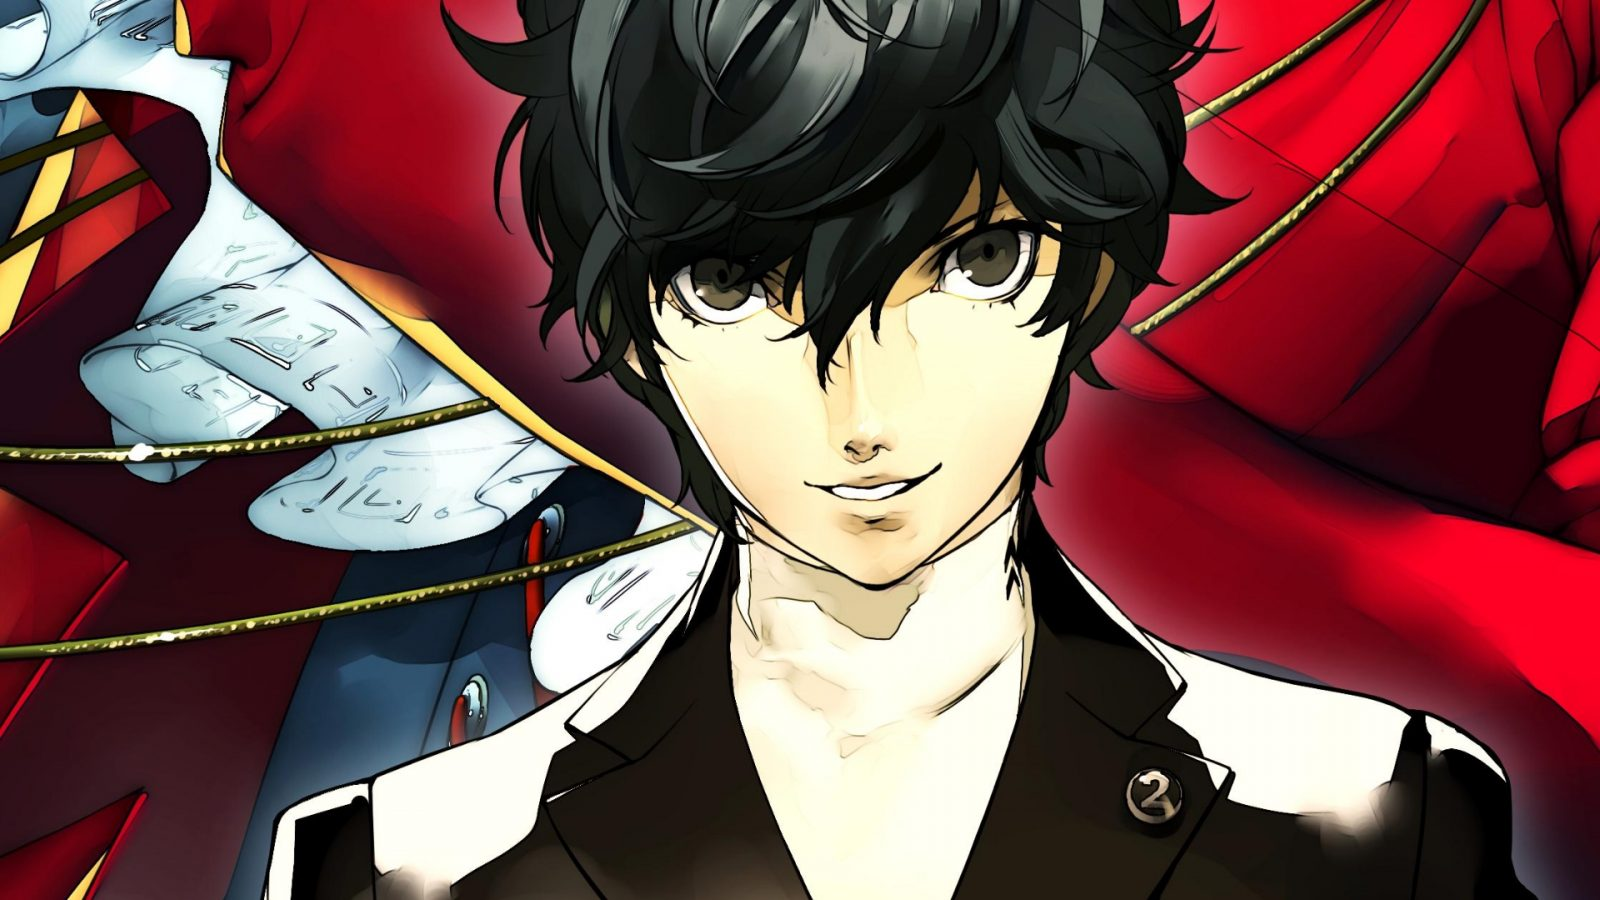 Third Trailer for Persona 5 Royal, New Protagonist Trailer